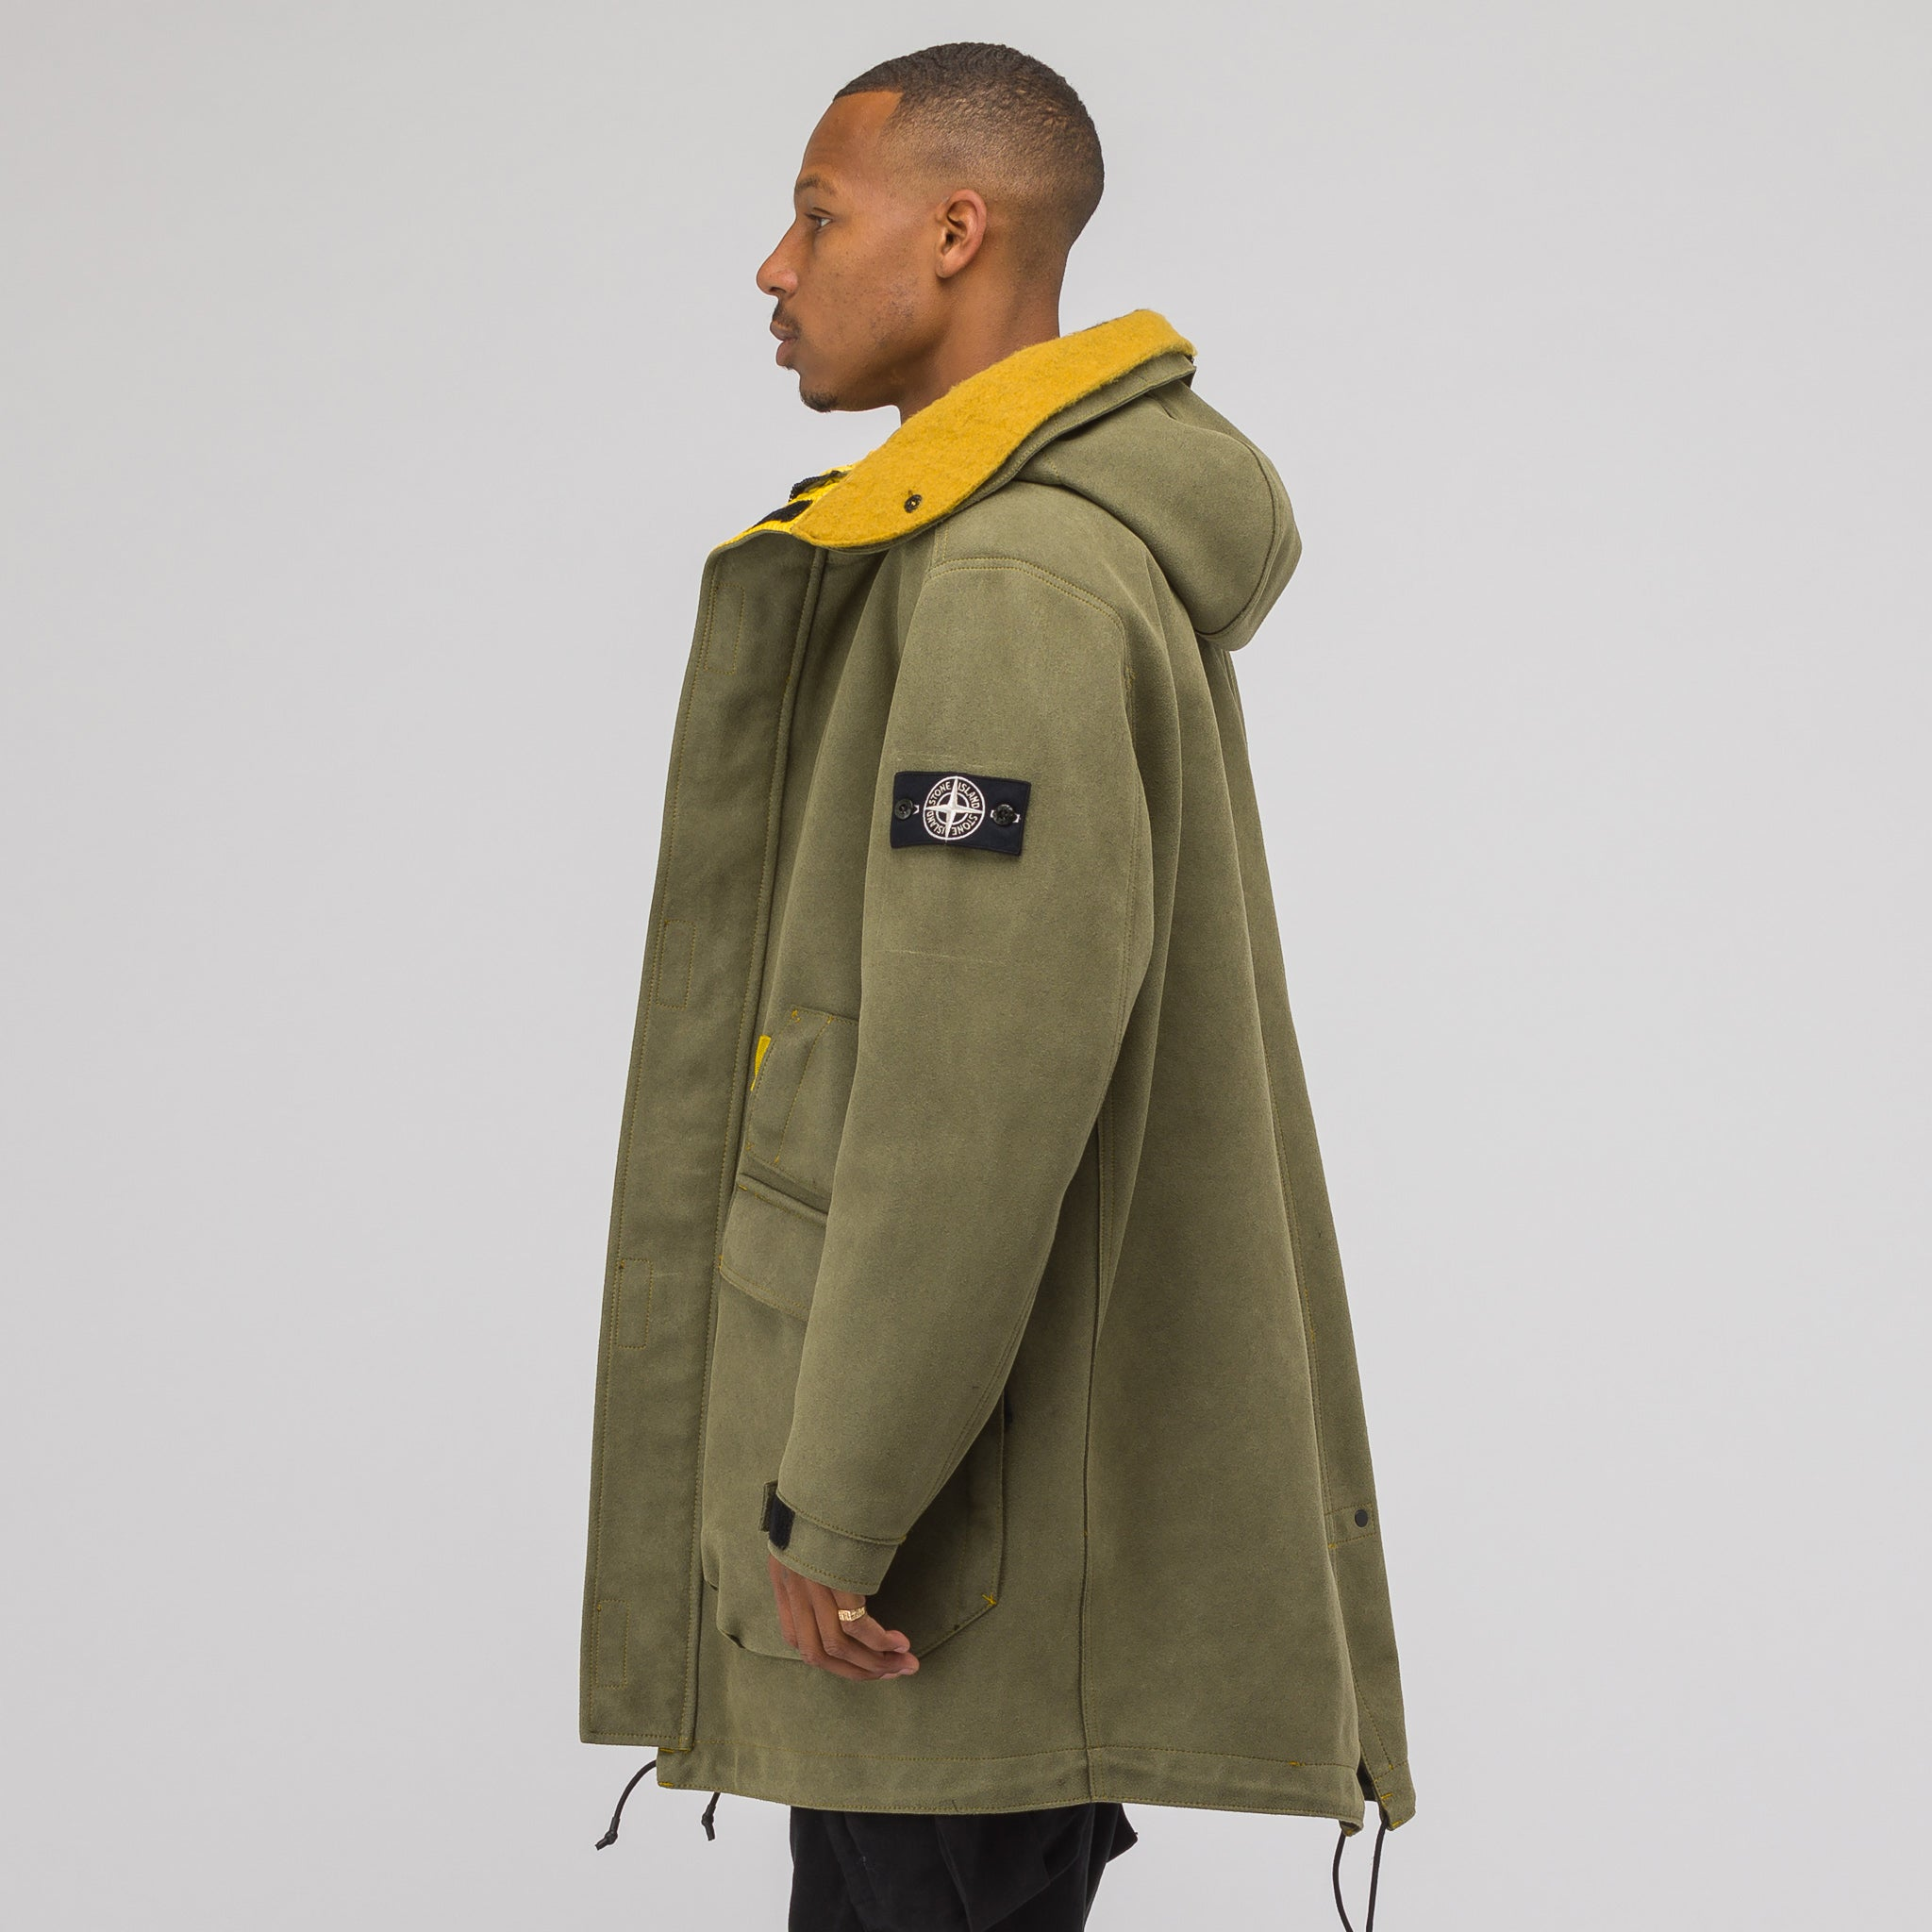 71229 Man Made Suede Coat in Olive